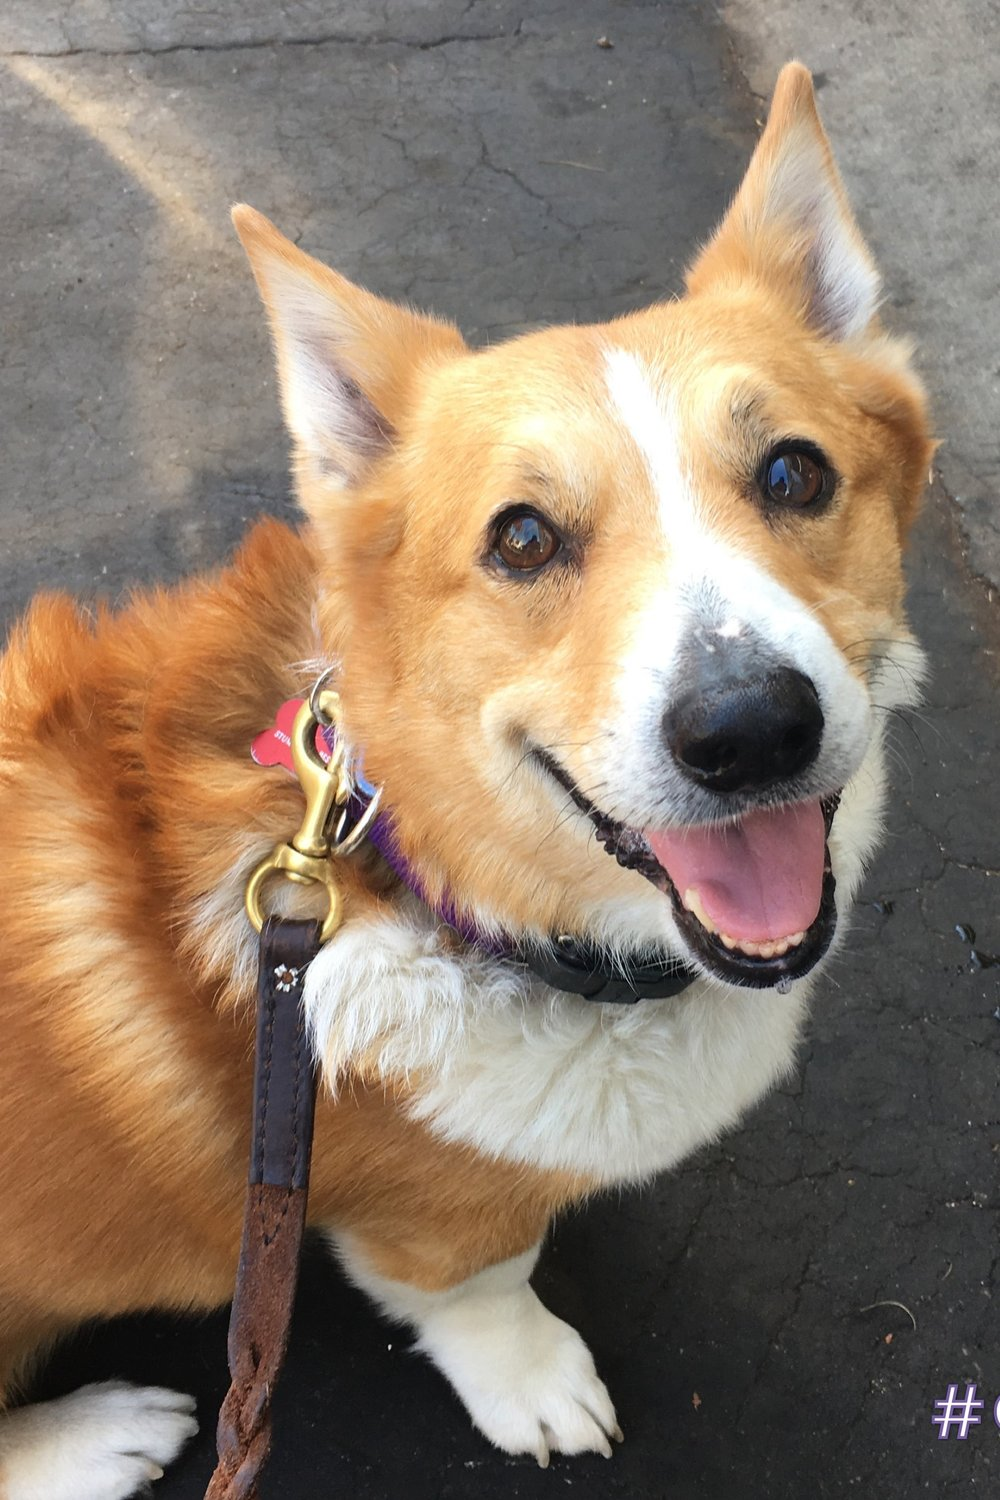 LESTER (Bite History; has bite inhibition) Male, 7.5 years old. Owner surrender due to nipping toddler. Adopted then returned due to biting while. guarding and herding humans. Dog Reactive; Working on Socialization. Has allergies and hip dysplasia. Crate and potty trained. Walks well on leas. Knows basic commands. Needs corgi savvy and experienced owner. Best as only dog with single individual. Not good for first time owner. Not good for households with children. Requires glucosamine supplements for remainder of his life.